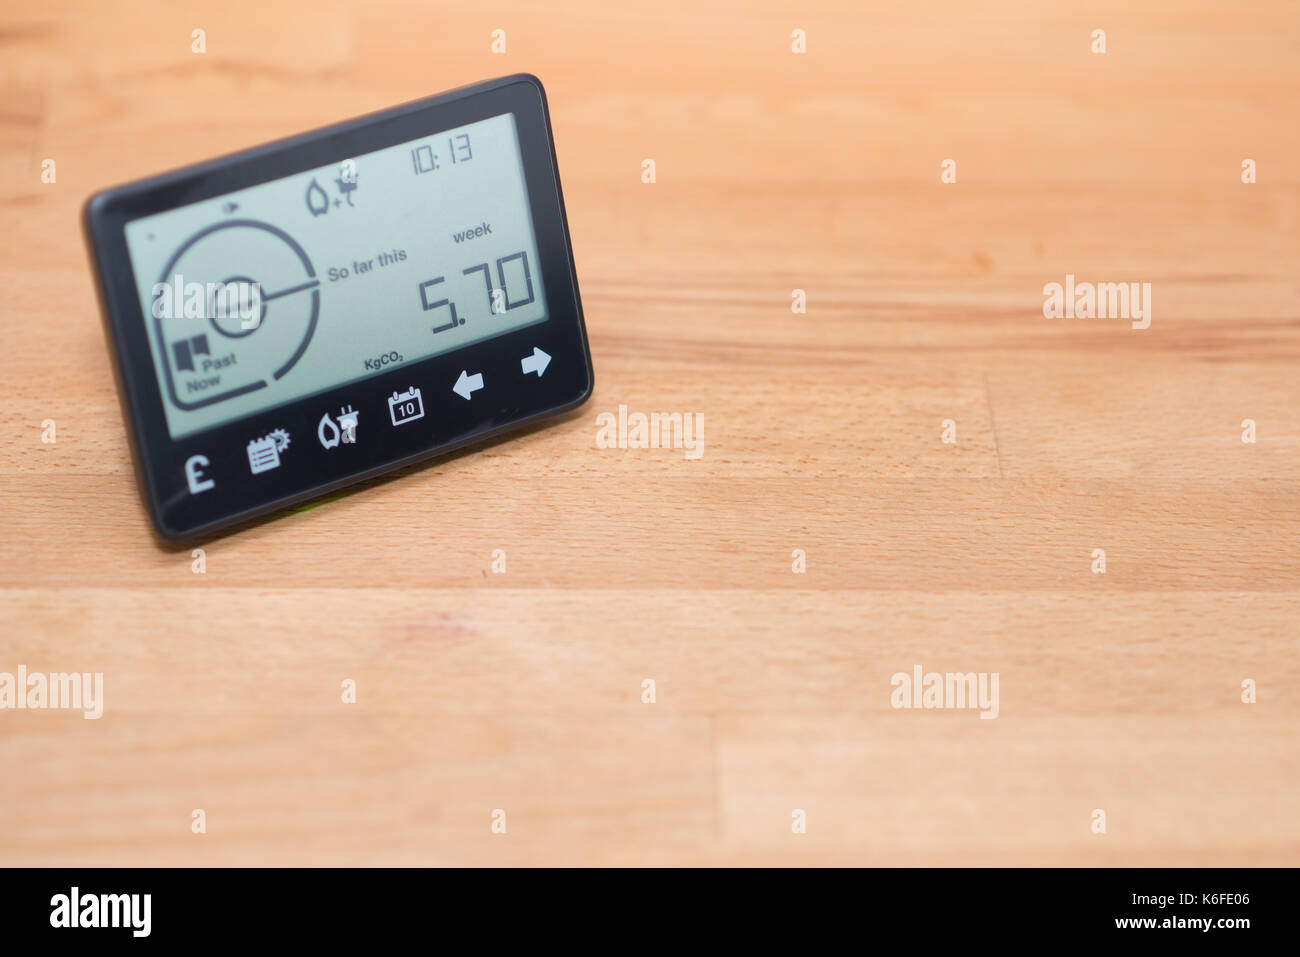 Smart Meter Home Stock Photos Amp Smart Meter Home Stock